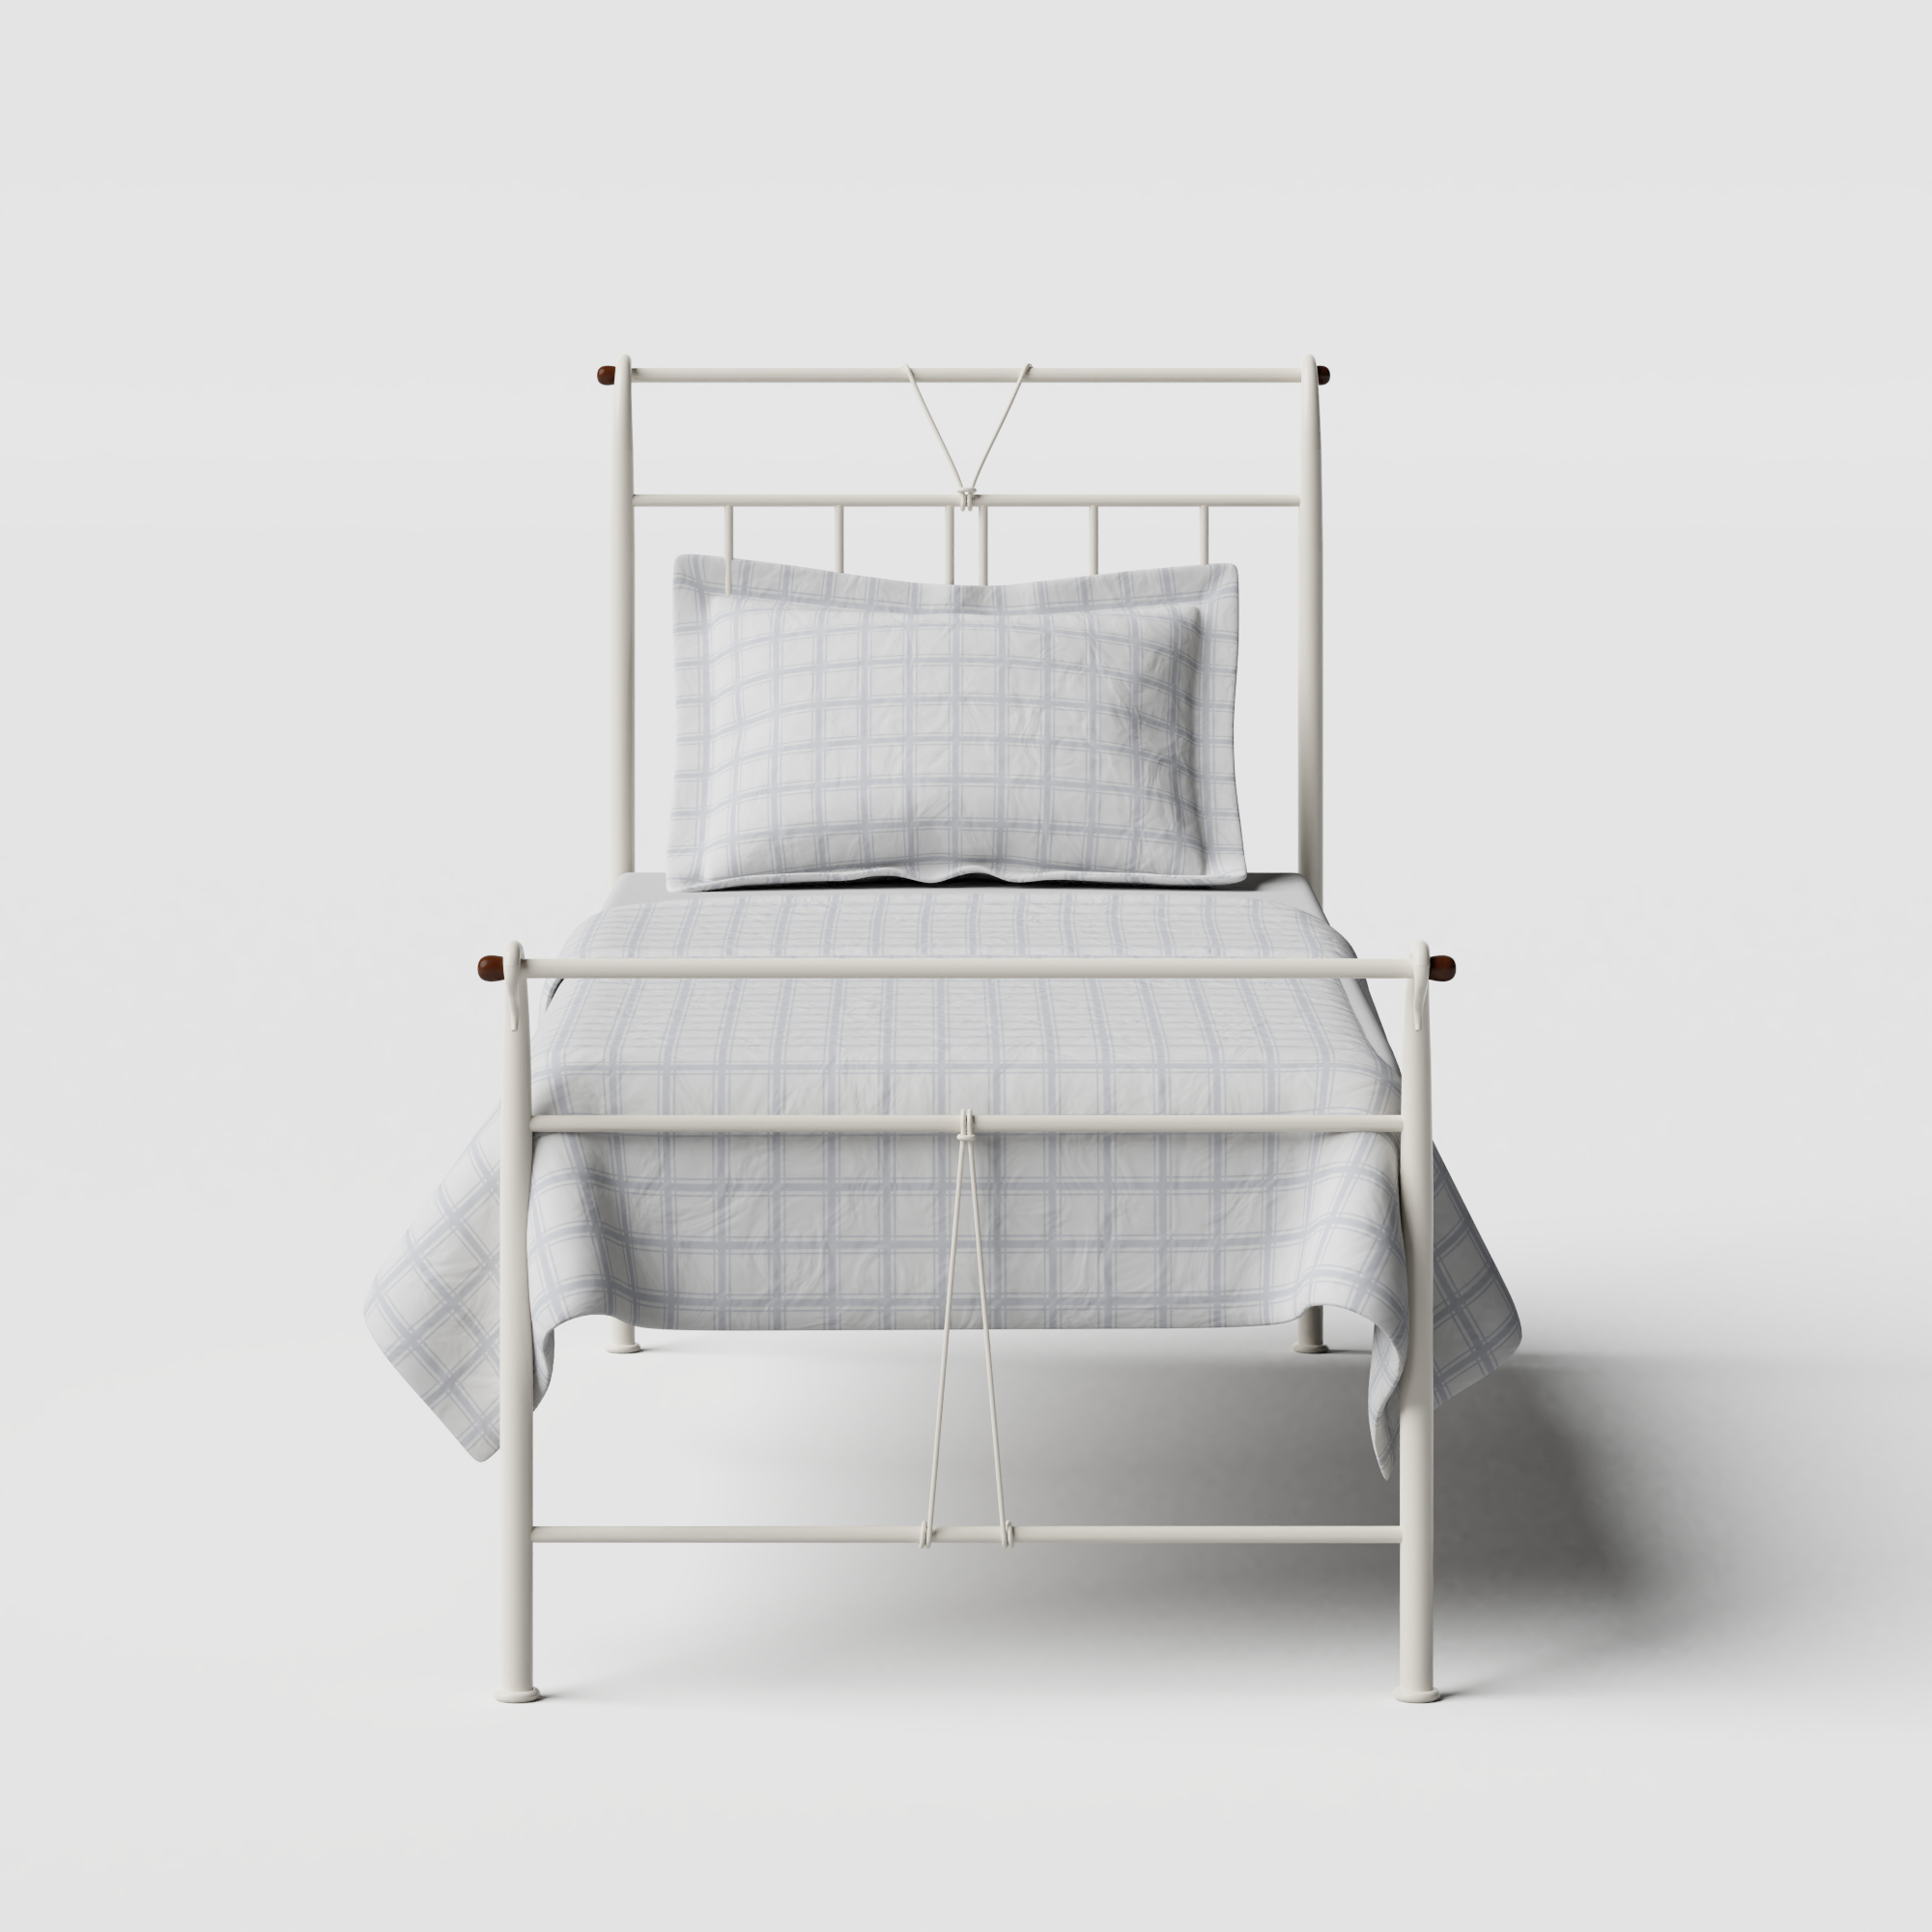 Pellini iron/metal single bed in ivory